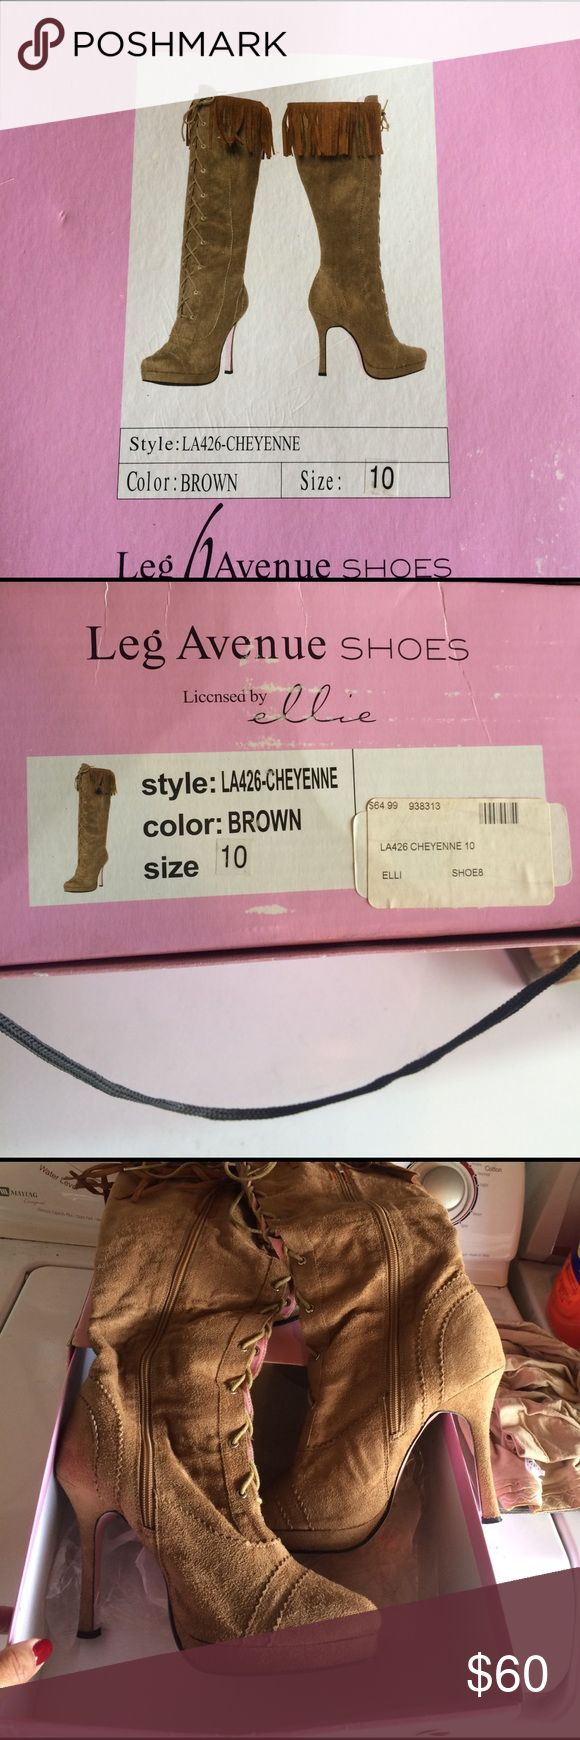 Leg Avenue Indian Boots Purchased these beautiful boots years ago for my Pocahontas costume. Worn twice. leg avenue Shoes